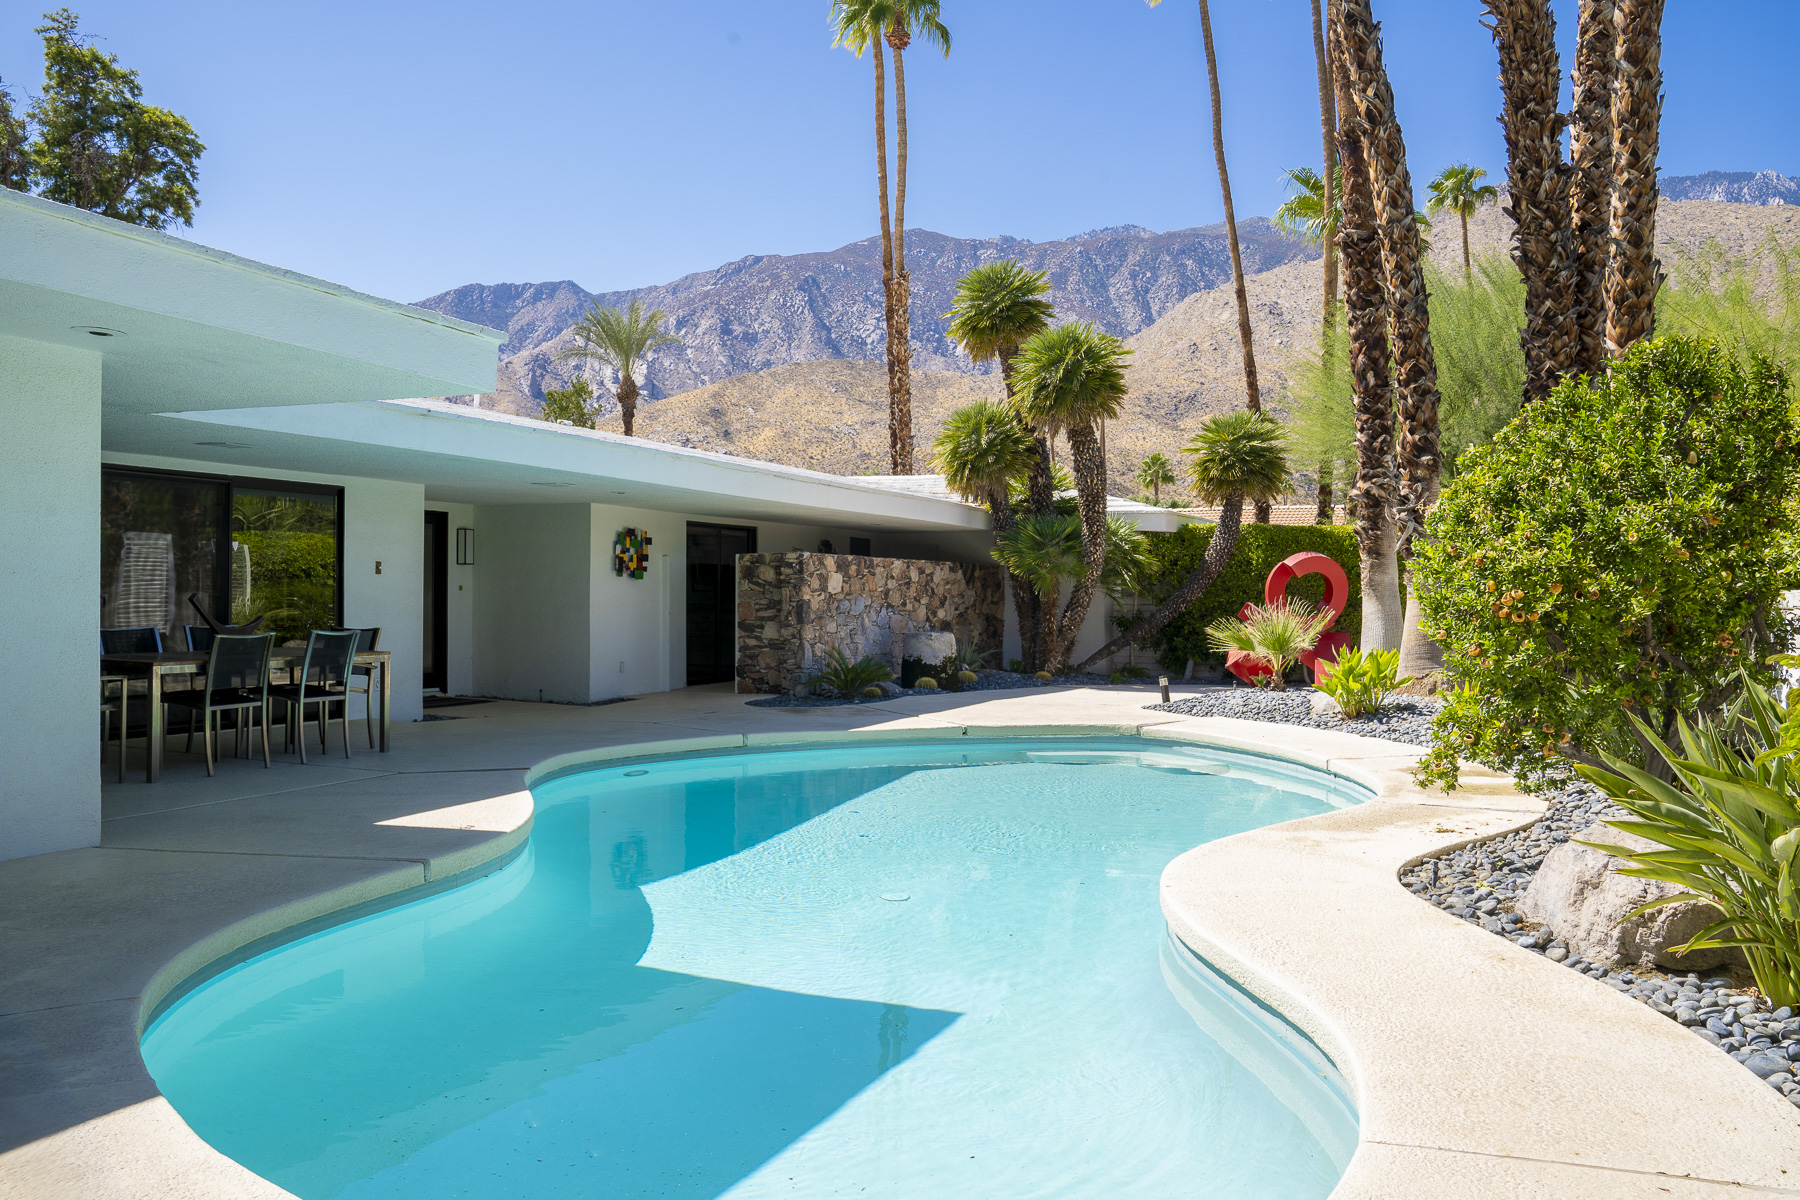 Single Family Homes for Sale at 811 East Sierra Way Palm Springs, California 92264 United States